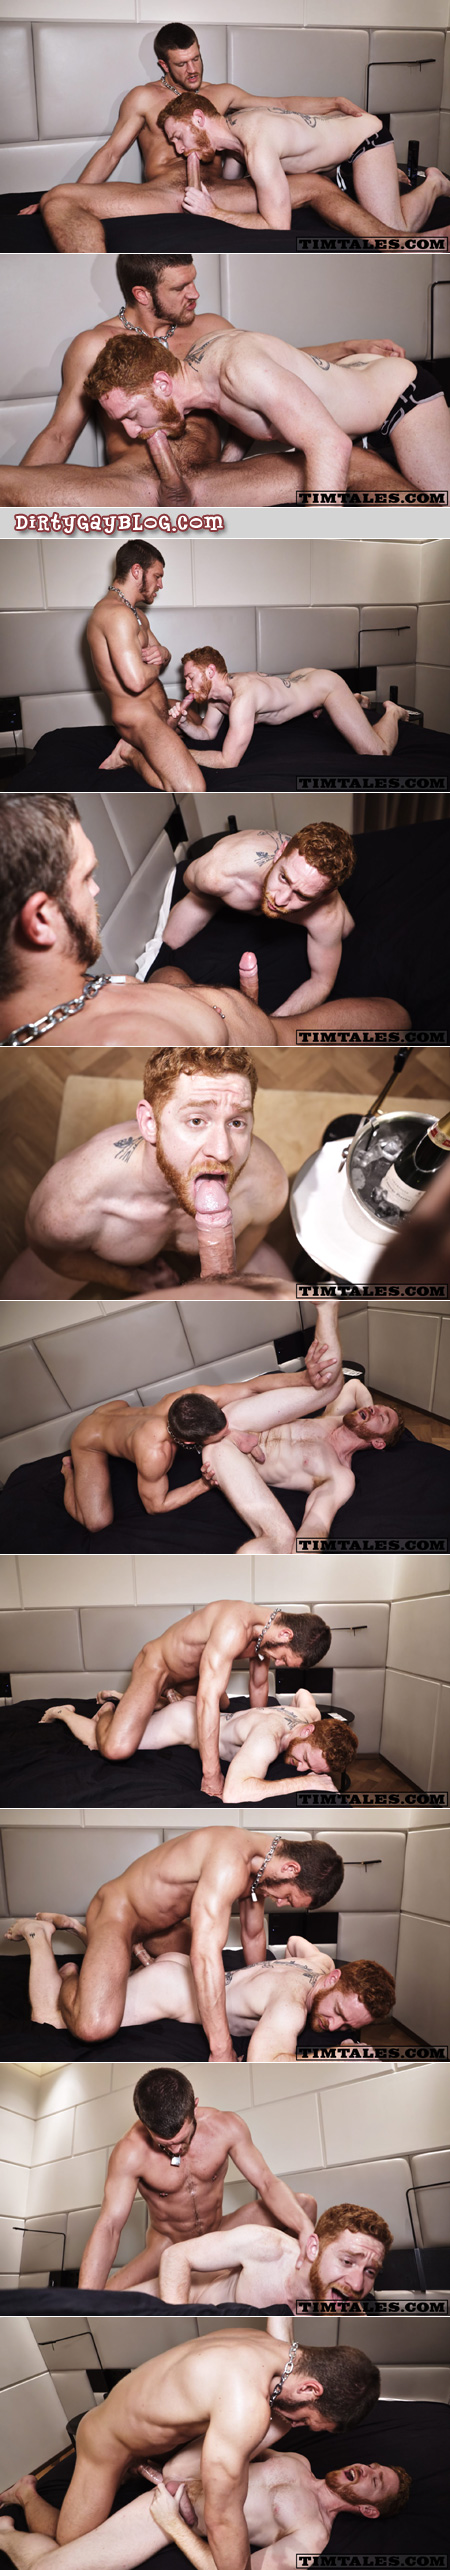 Bearded, muscular ginger getting fucked hard by a hunky Canadian man.